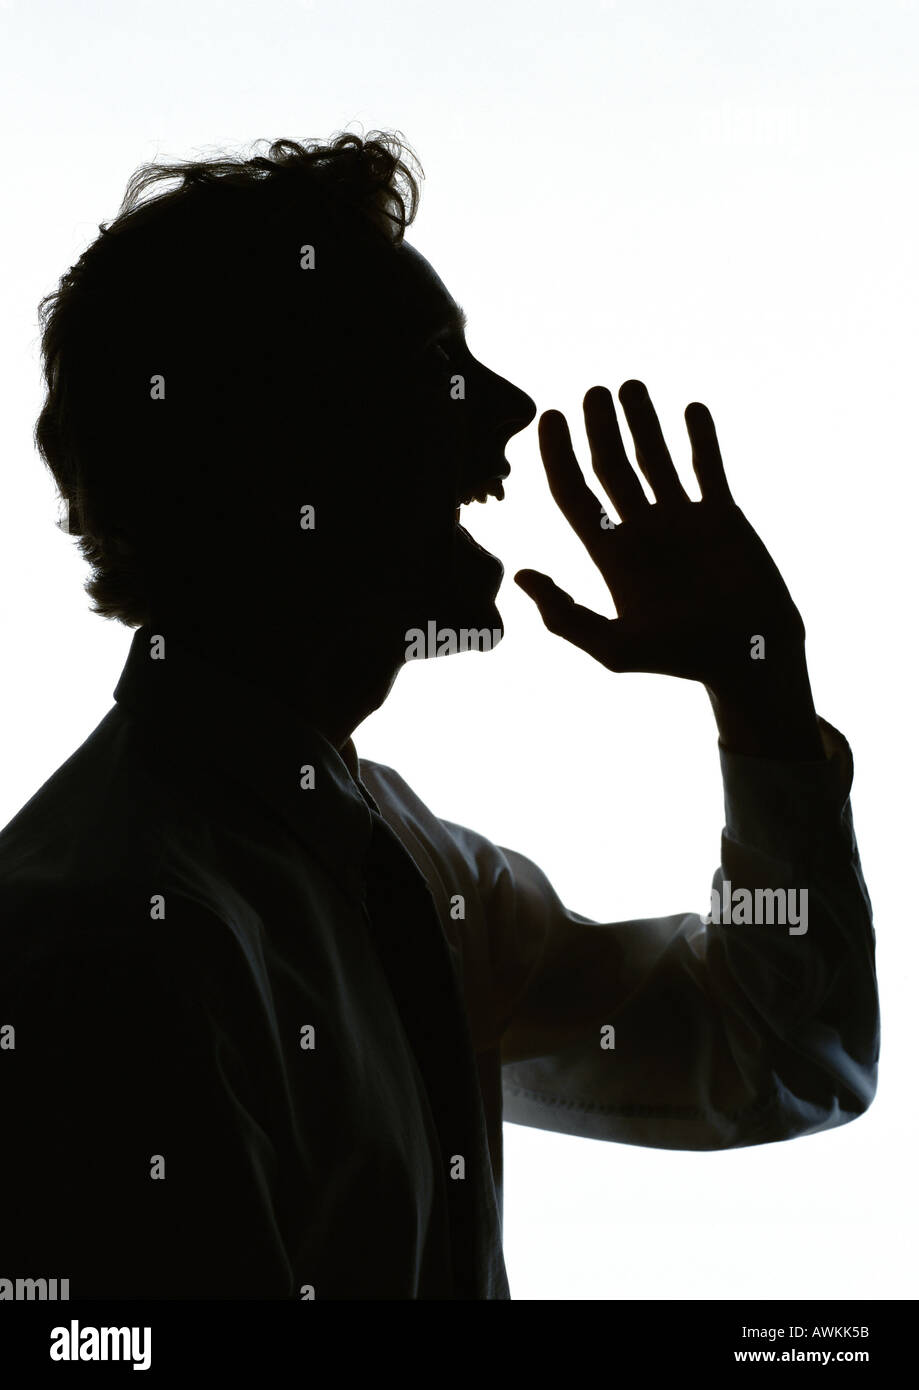 Man yelling with hand out in front of mouth, silhouette - Stock Image